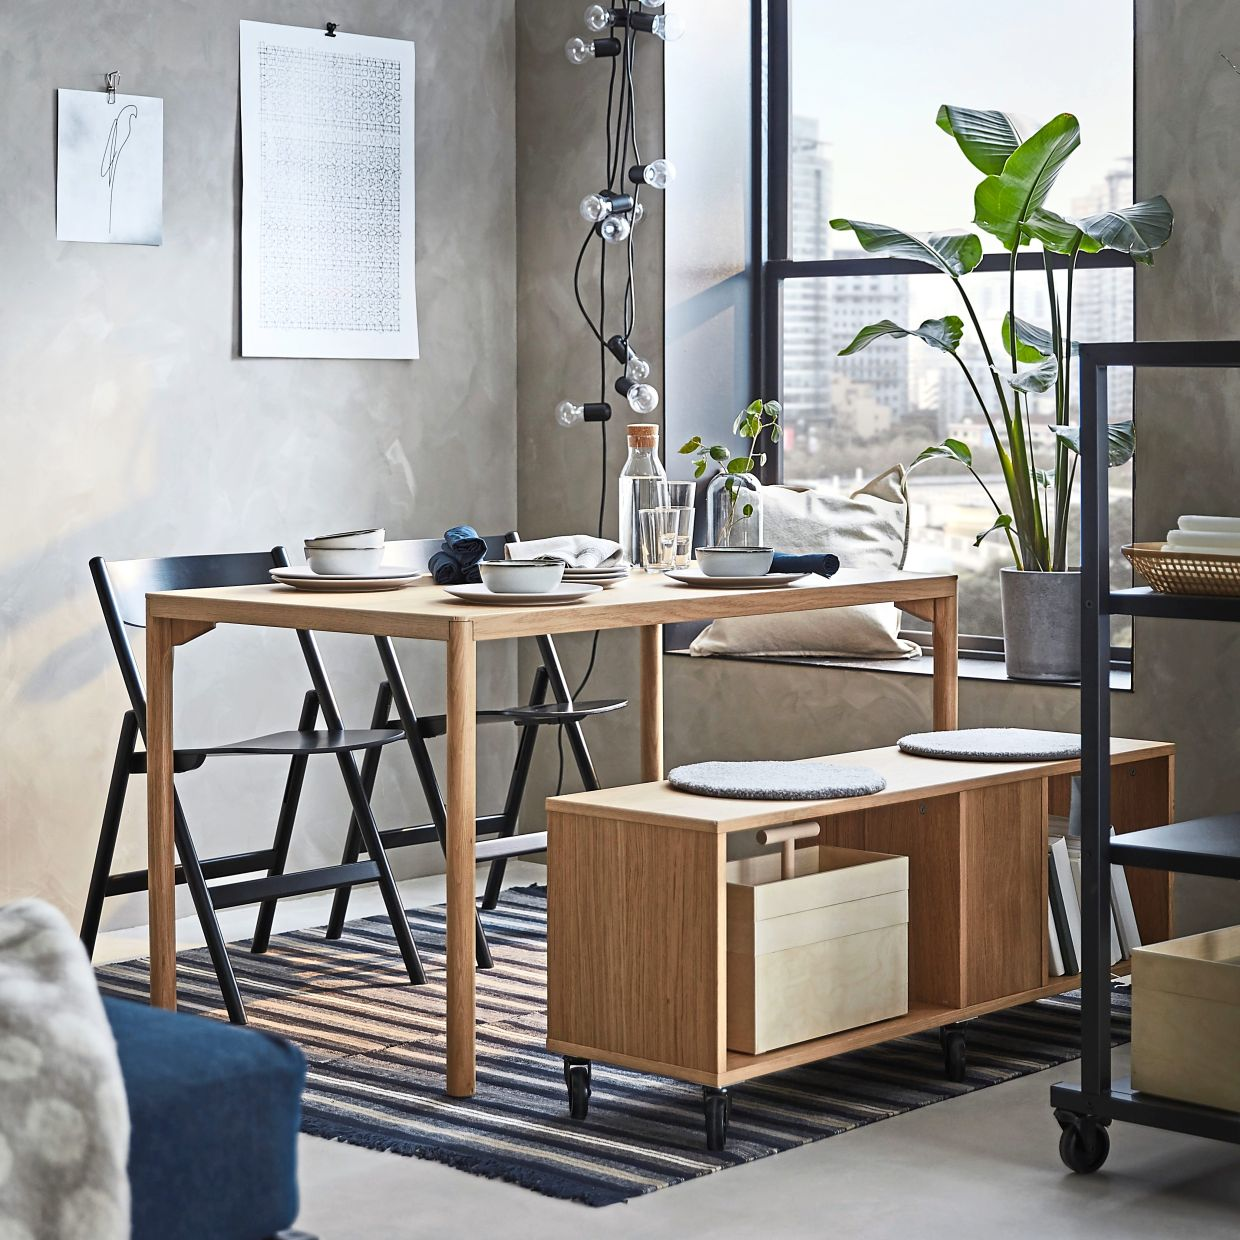 The Ravaror collection includes functional items that can quickly turn small spaces into smart spaces.